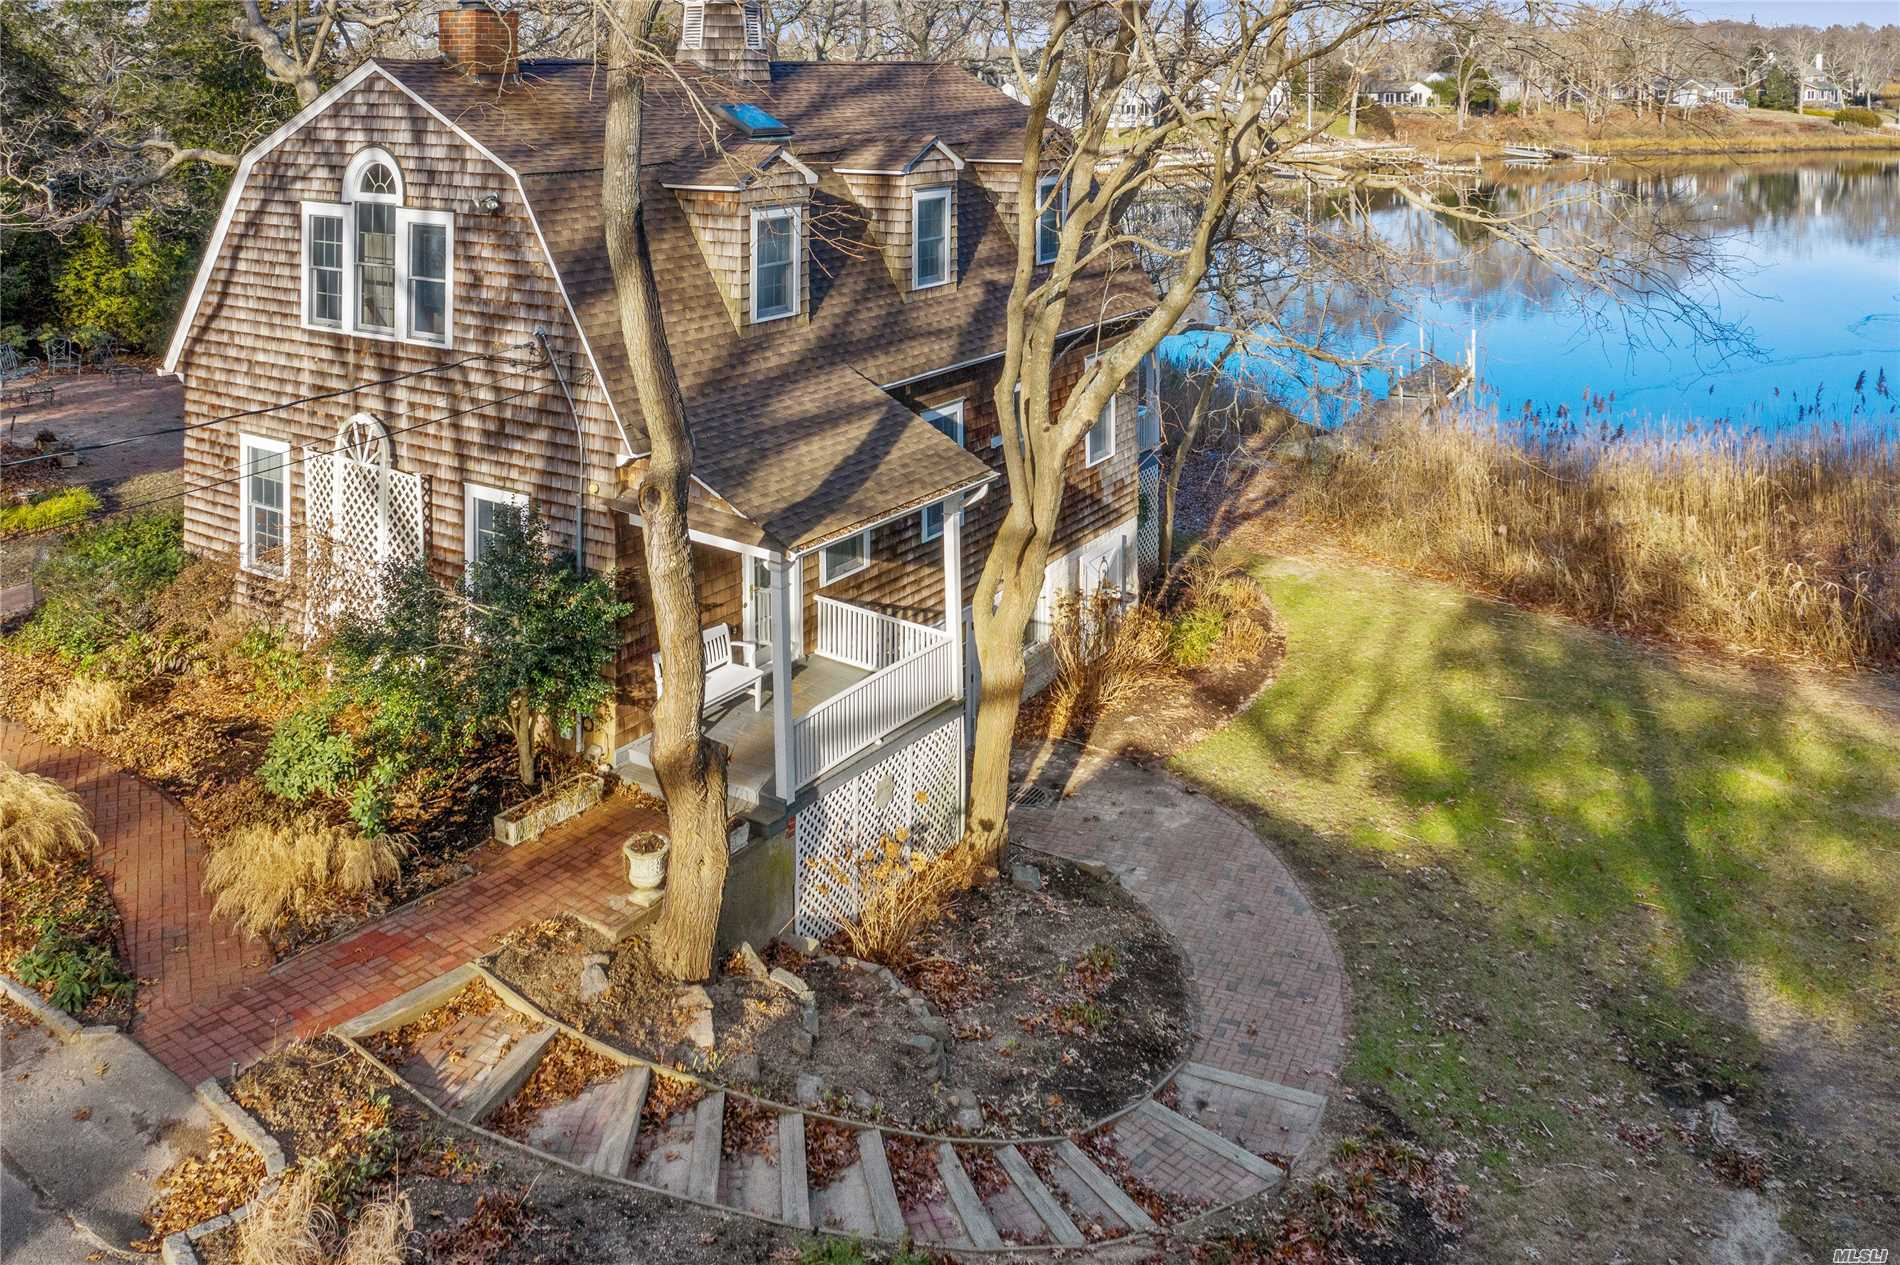 On Deep Hole Creek, This Nantucket Style North Fork Charmer Features 4 Bedrooms, 2 Full Baths, High Ceilings, Spacious Open Layout, Hardwood Floors Throughout, Amazing Waterviews With Direct Bay Access & 2 Car Garage On Shy Acre. Original Carriage House For Adair Lodge. Located Near All The Great Things The North Fork Has To Offer...Beaches, Wineries, Love Lane, & Peconic Bay.